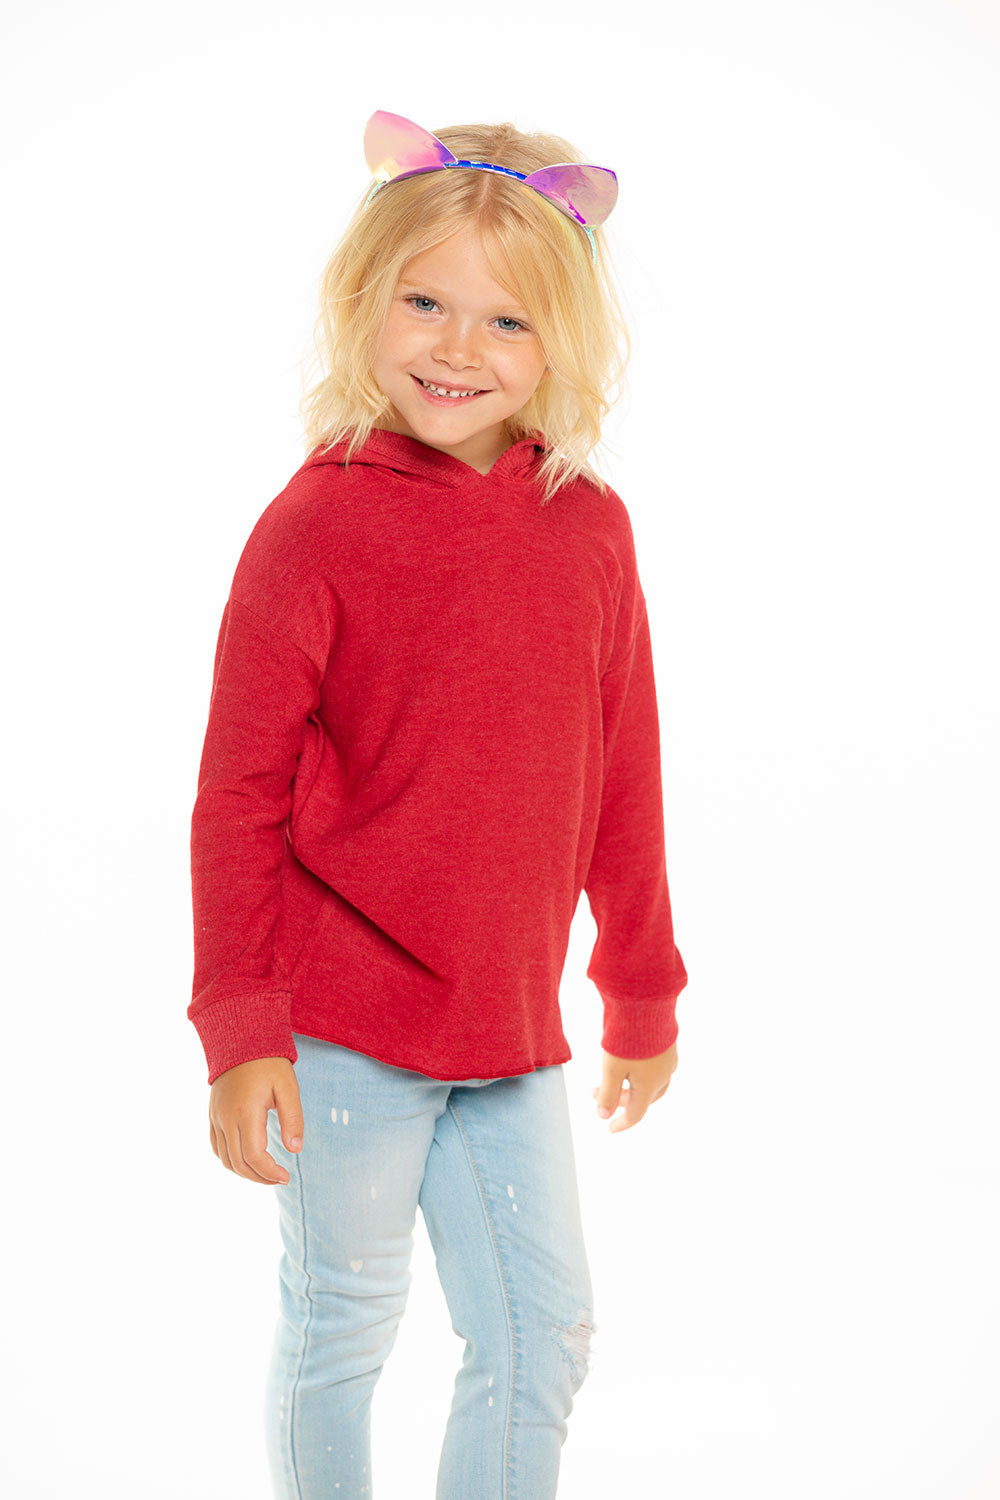 Cozy Knit Hi Lo Pullover Hoodie in Cardinal Red GIRLS chaserbrand4.myshopify.com